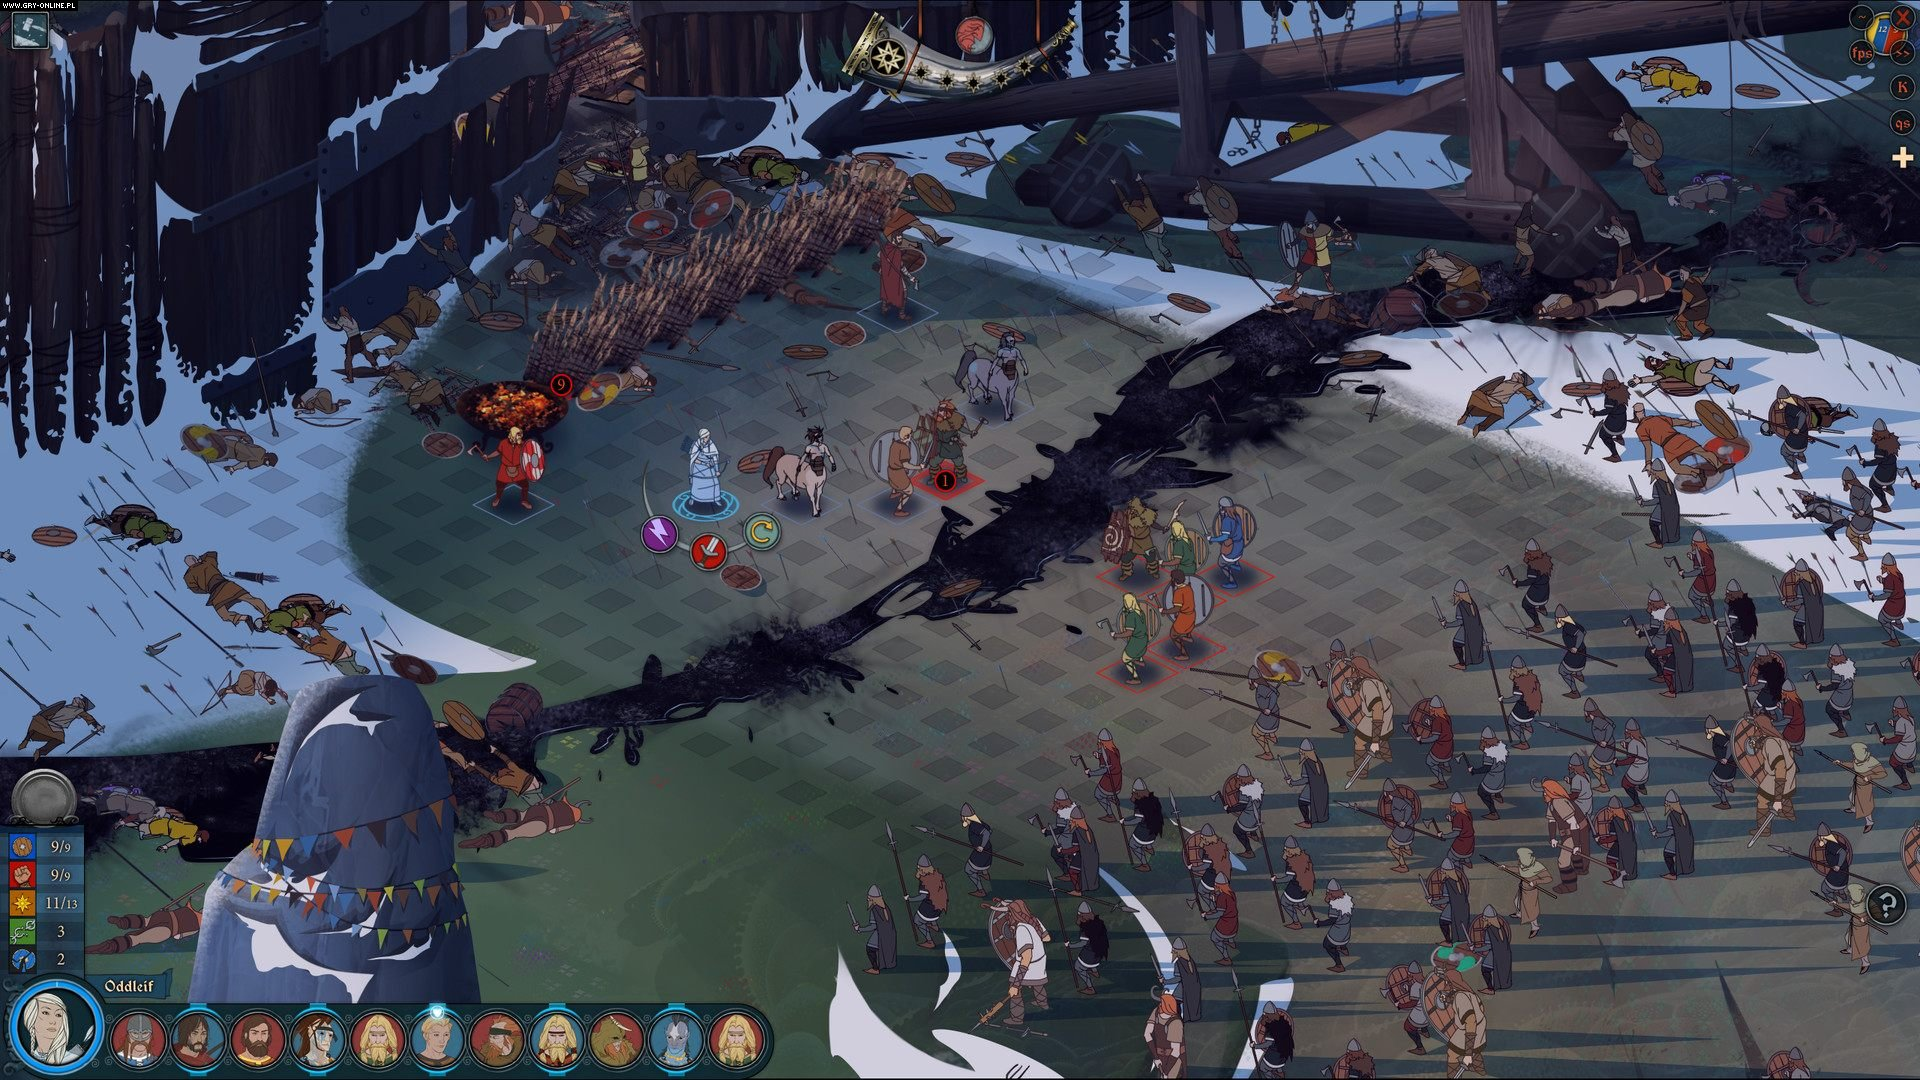 The Banner Saga 3 PC, PS4, XONE, Switch Gry Screen 4/5, Stoic, Versus Evil